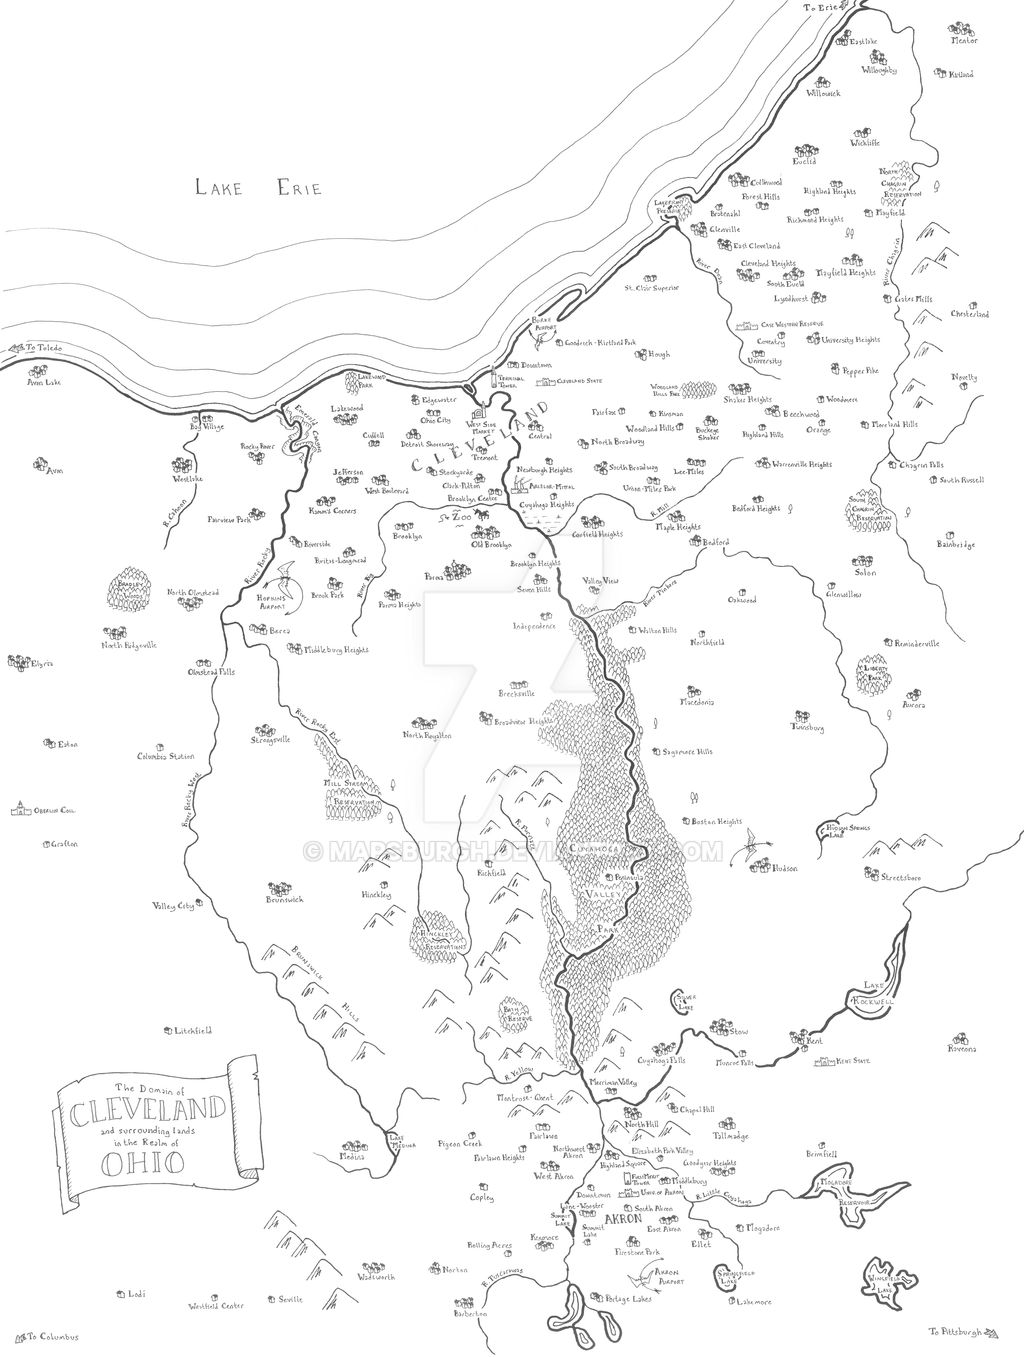 Fantasy map of Cuyahoga Valley (Cleveland-Akron)